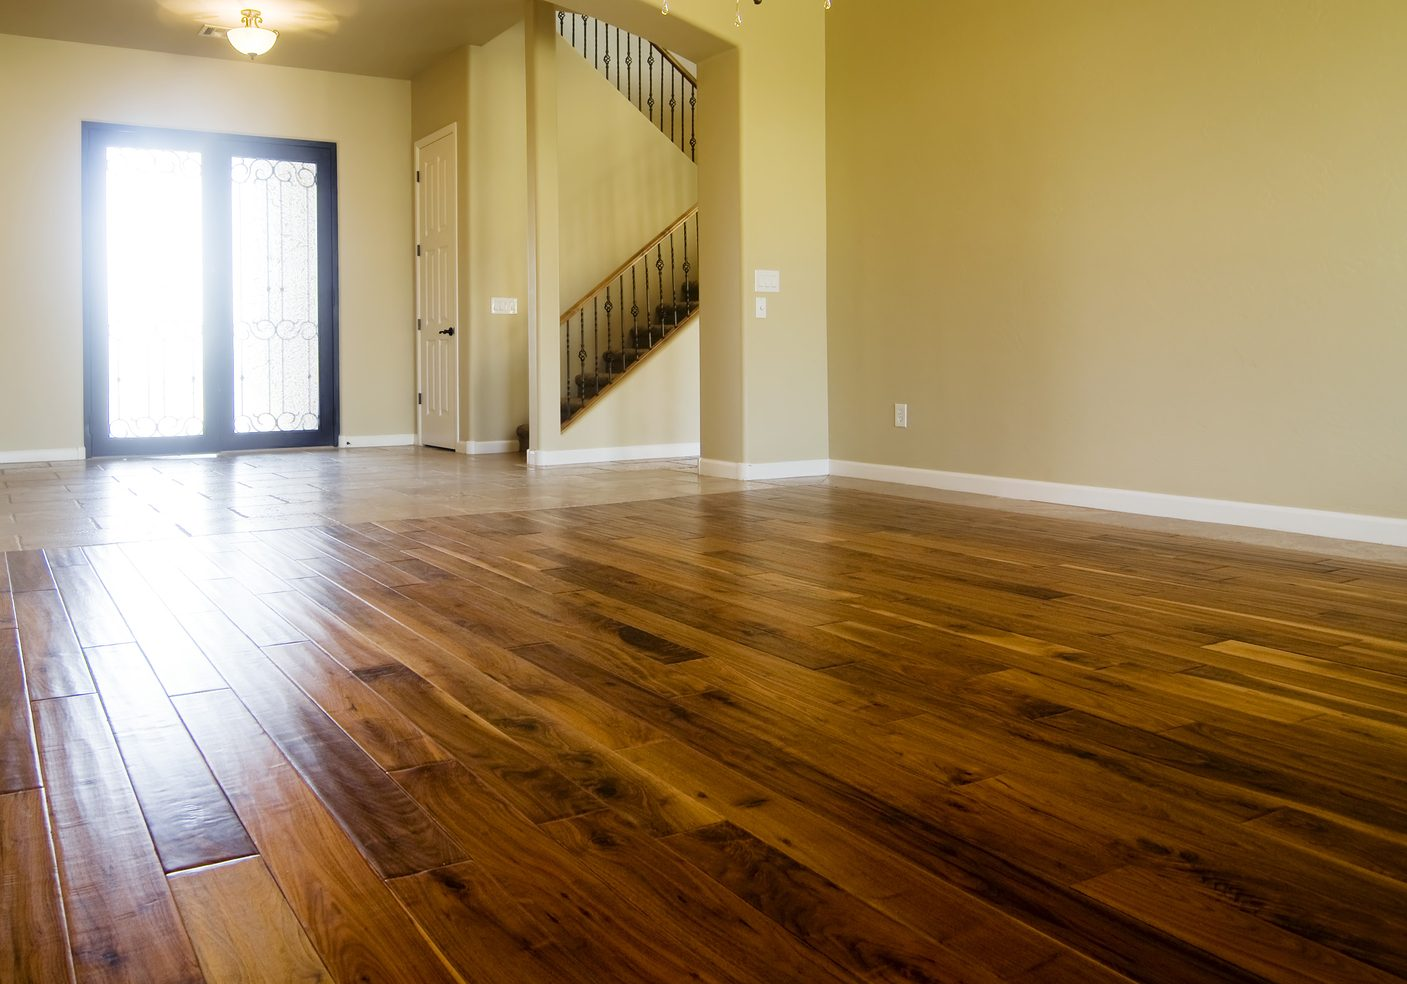 New home with beautiful hardwood flooring in living room area